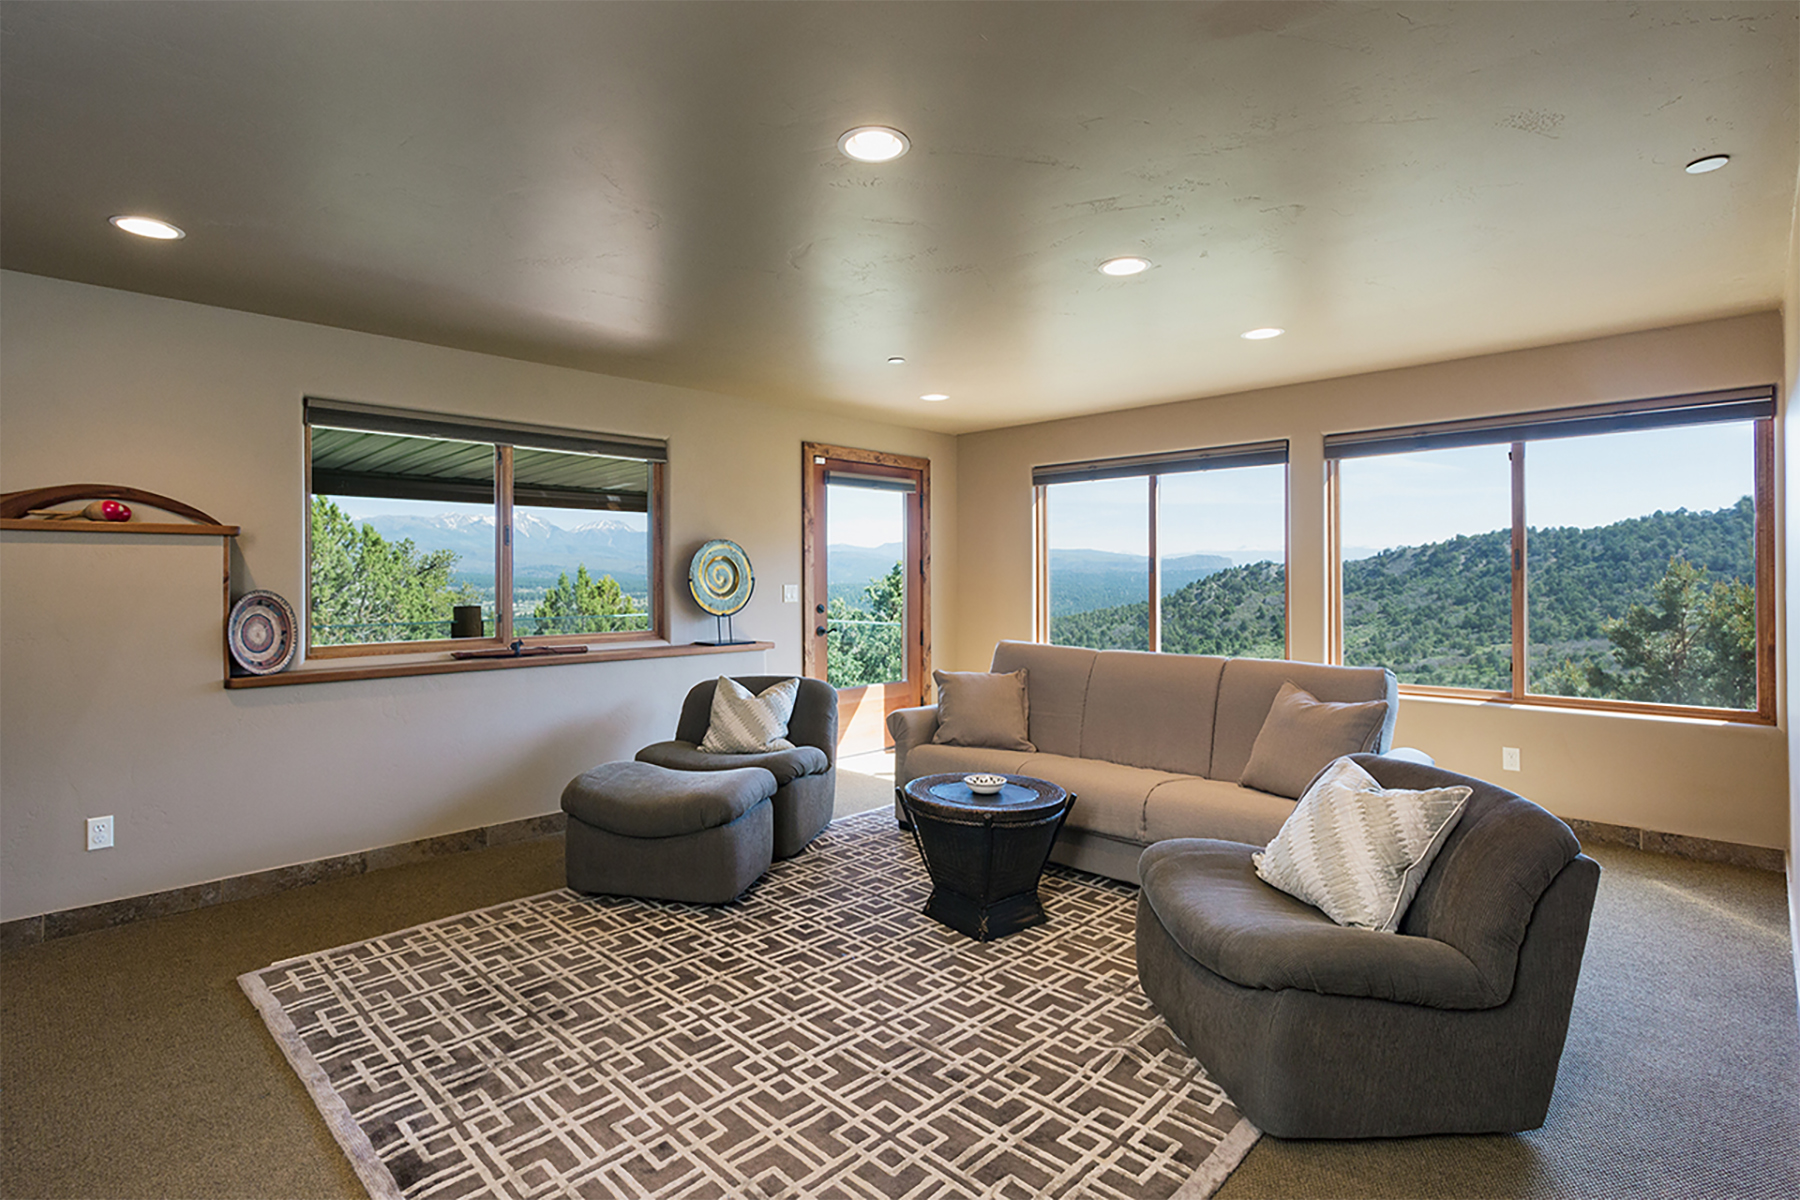 Additional photo for property listing at 1463 Thunderbird Road 1463 Thunderbird Road Durango, Colorado 81301 United States